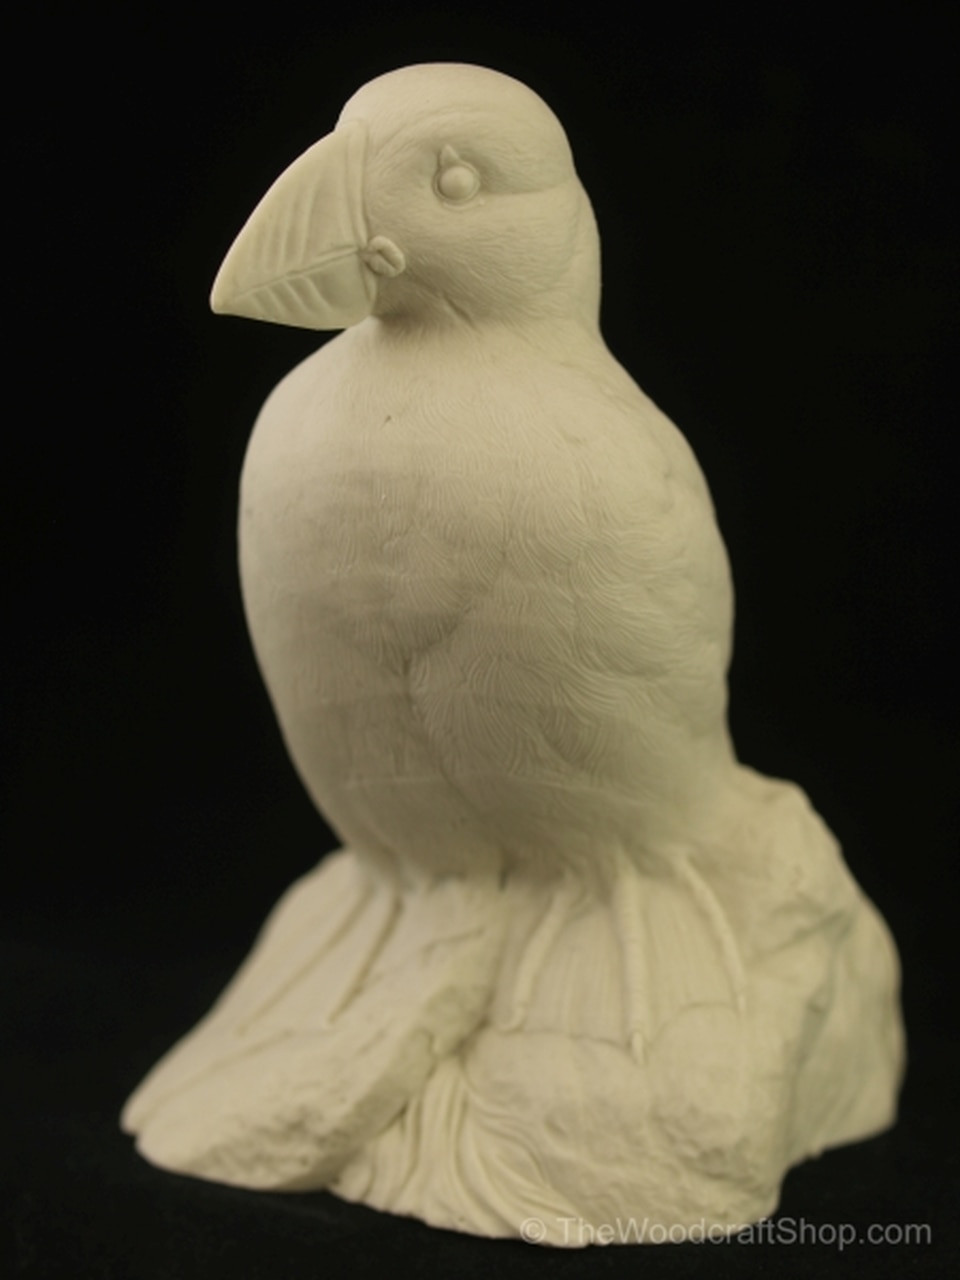 Puffin Guge Study cast slightly facing the left with frontal view.